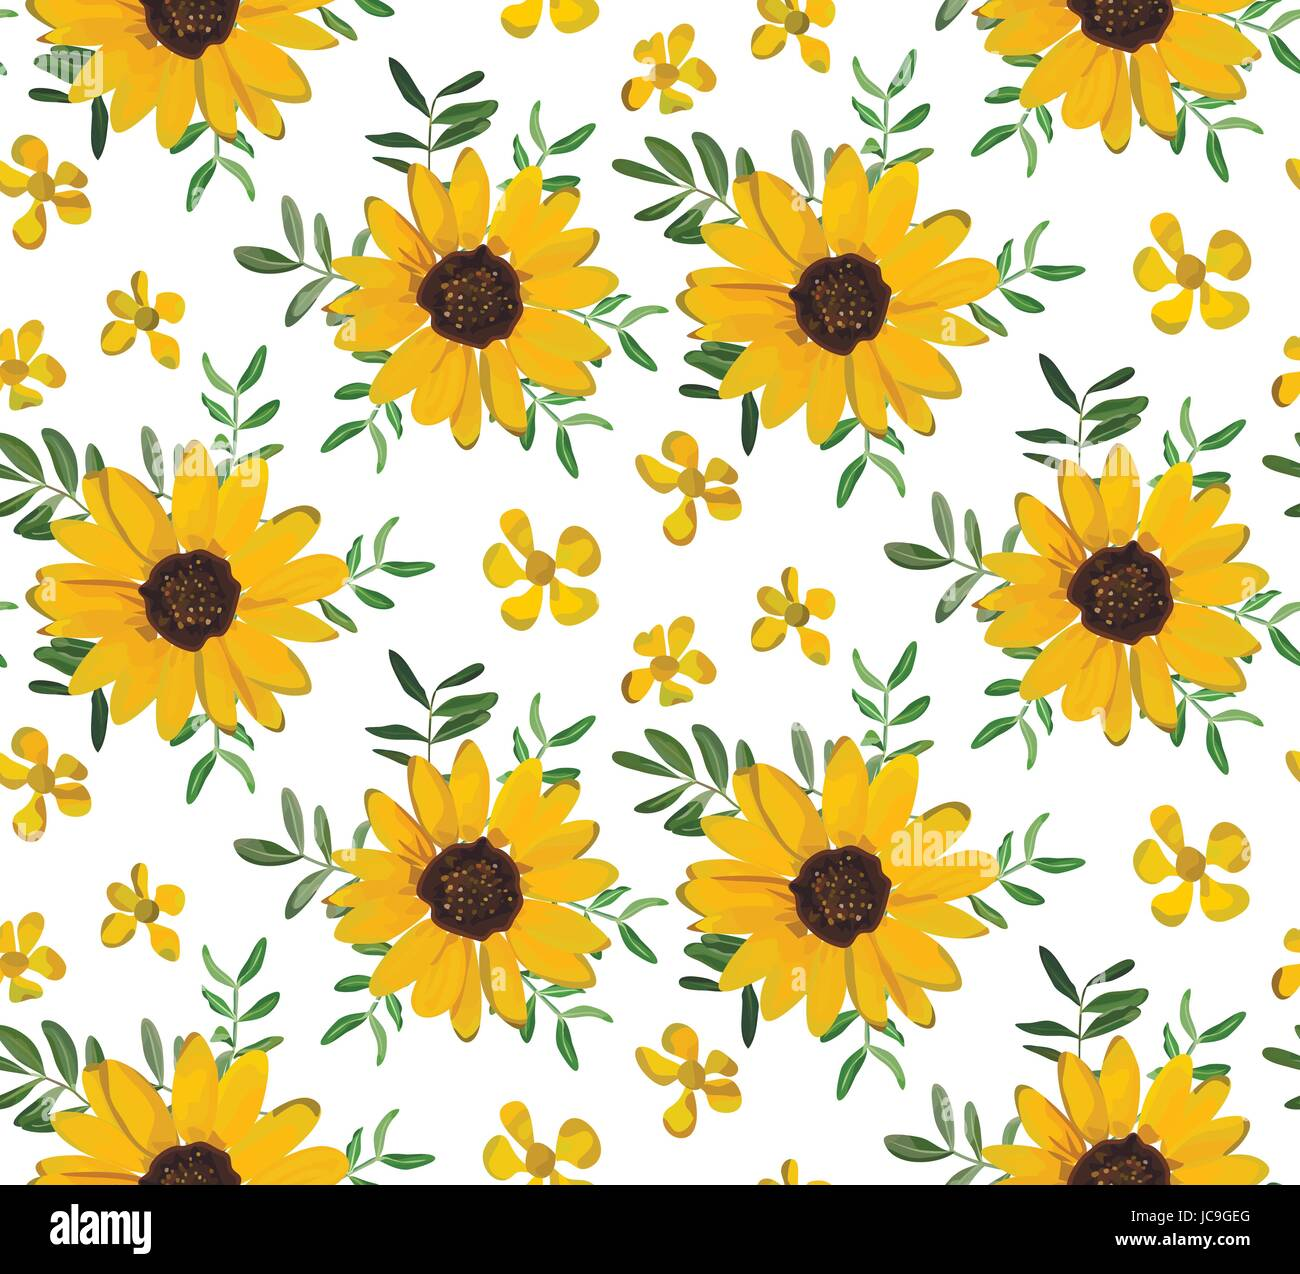 Fall Leve Wallpapers Vintage Yellow Sunflower Tiny Beautiful Soft Flowers